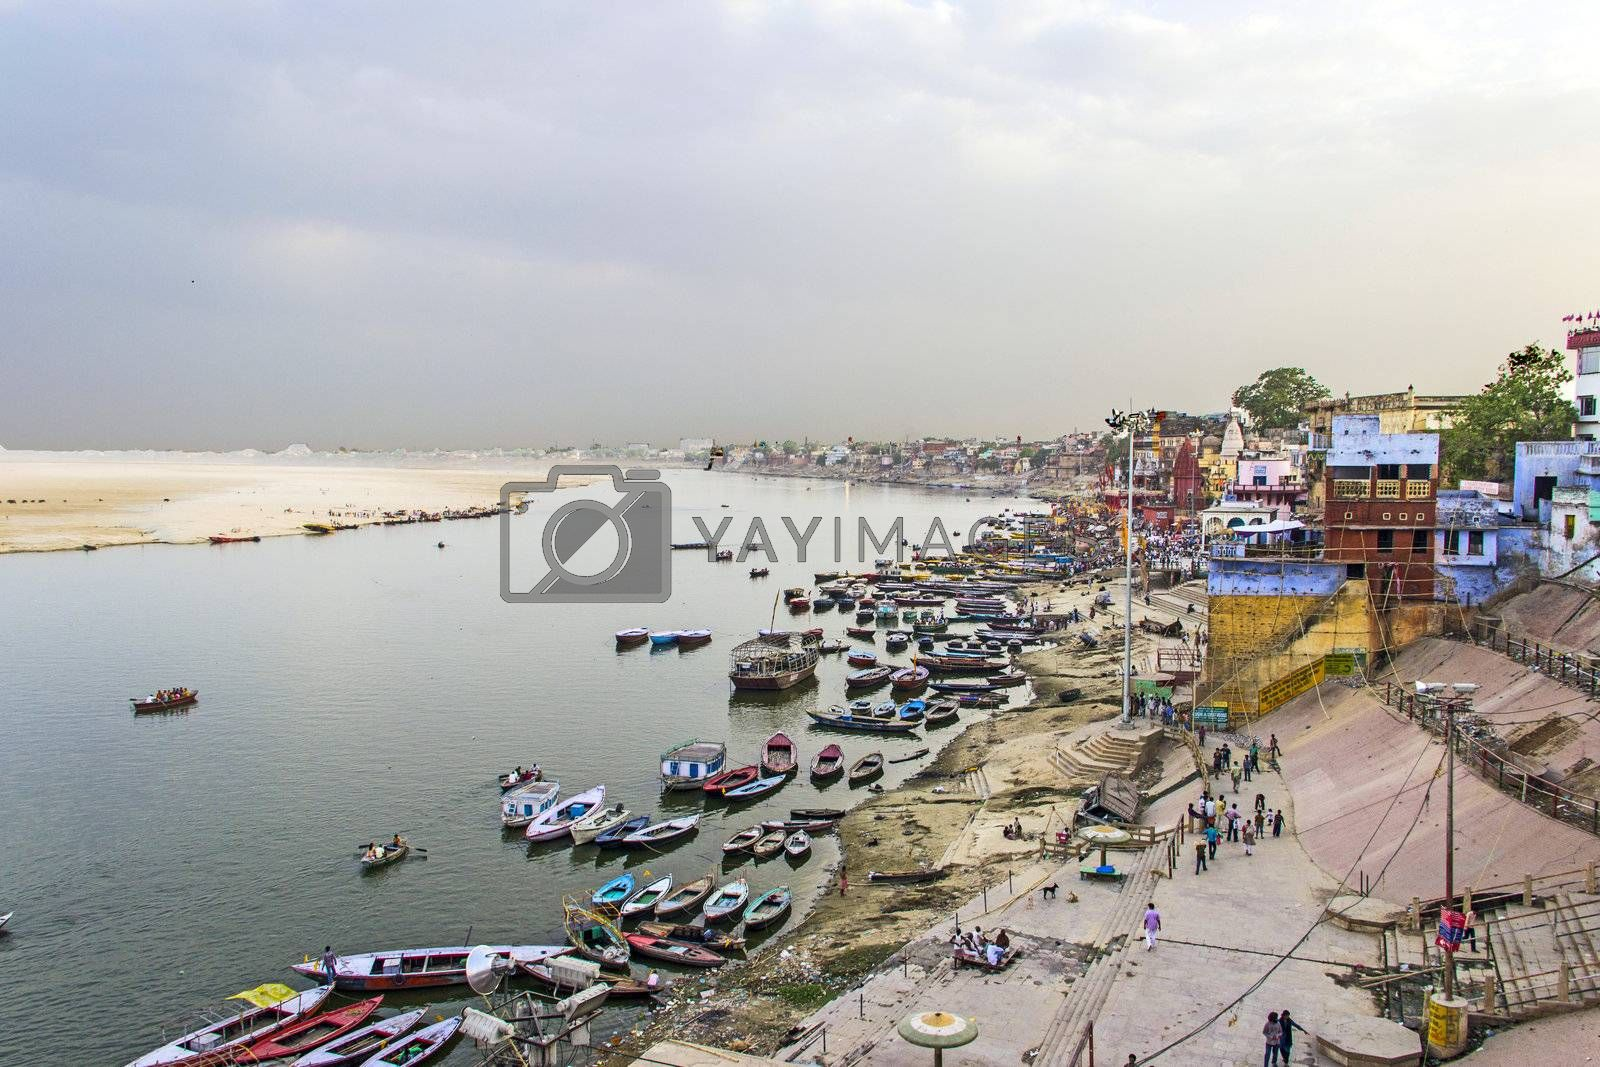 Boats at river ganges ready for transport of pilgrims on the sacred River Ganges at Varanasi  , India.